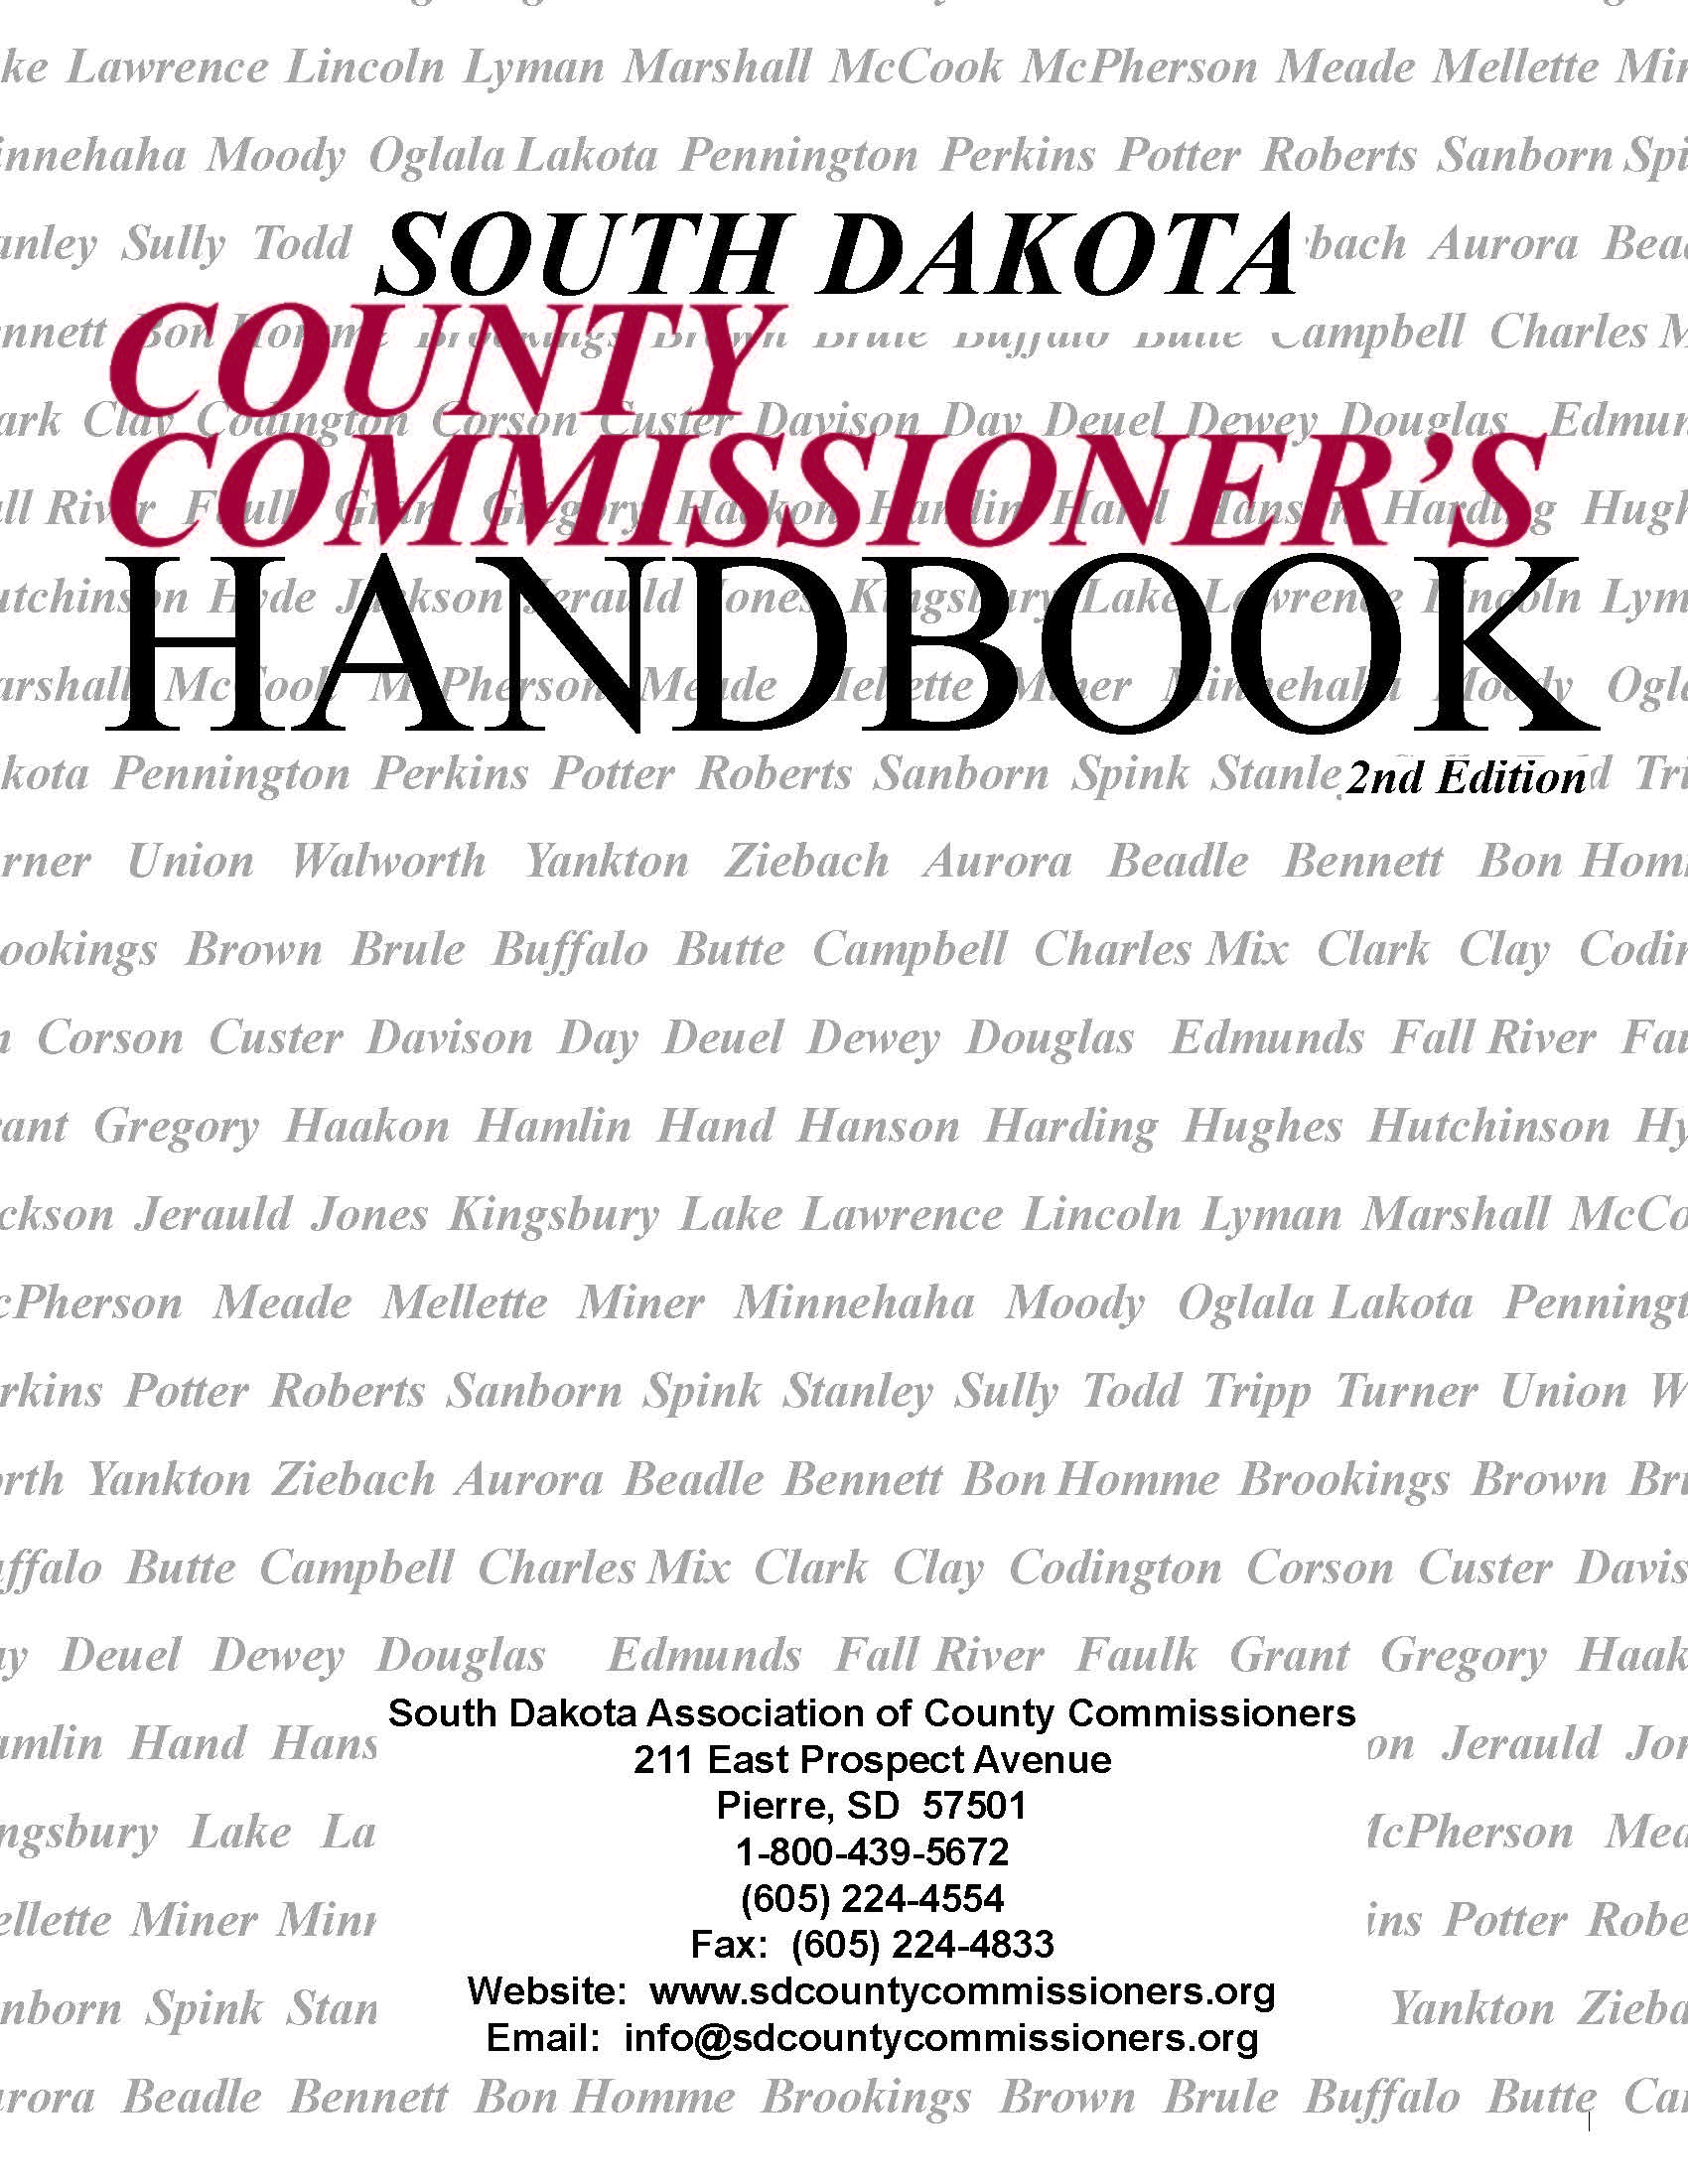 South Dakota Association of County Commissioners | To Promote and